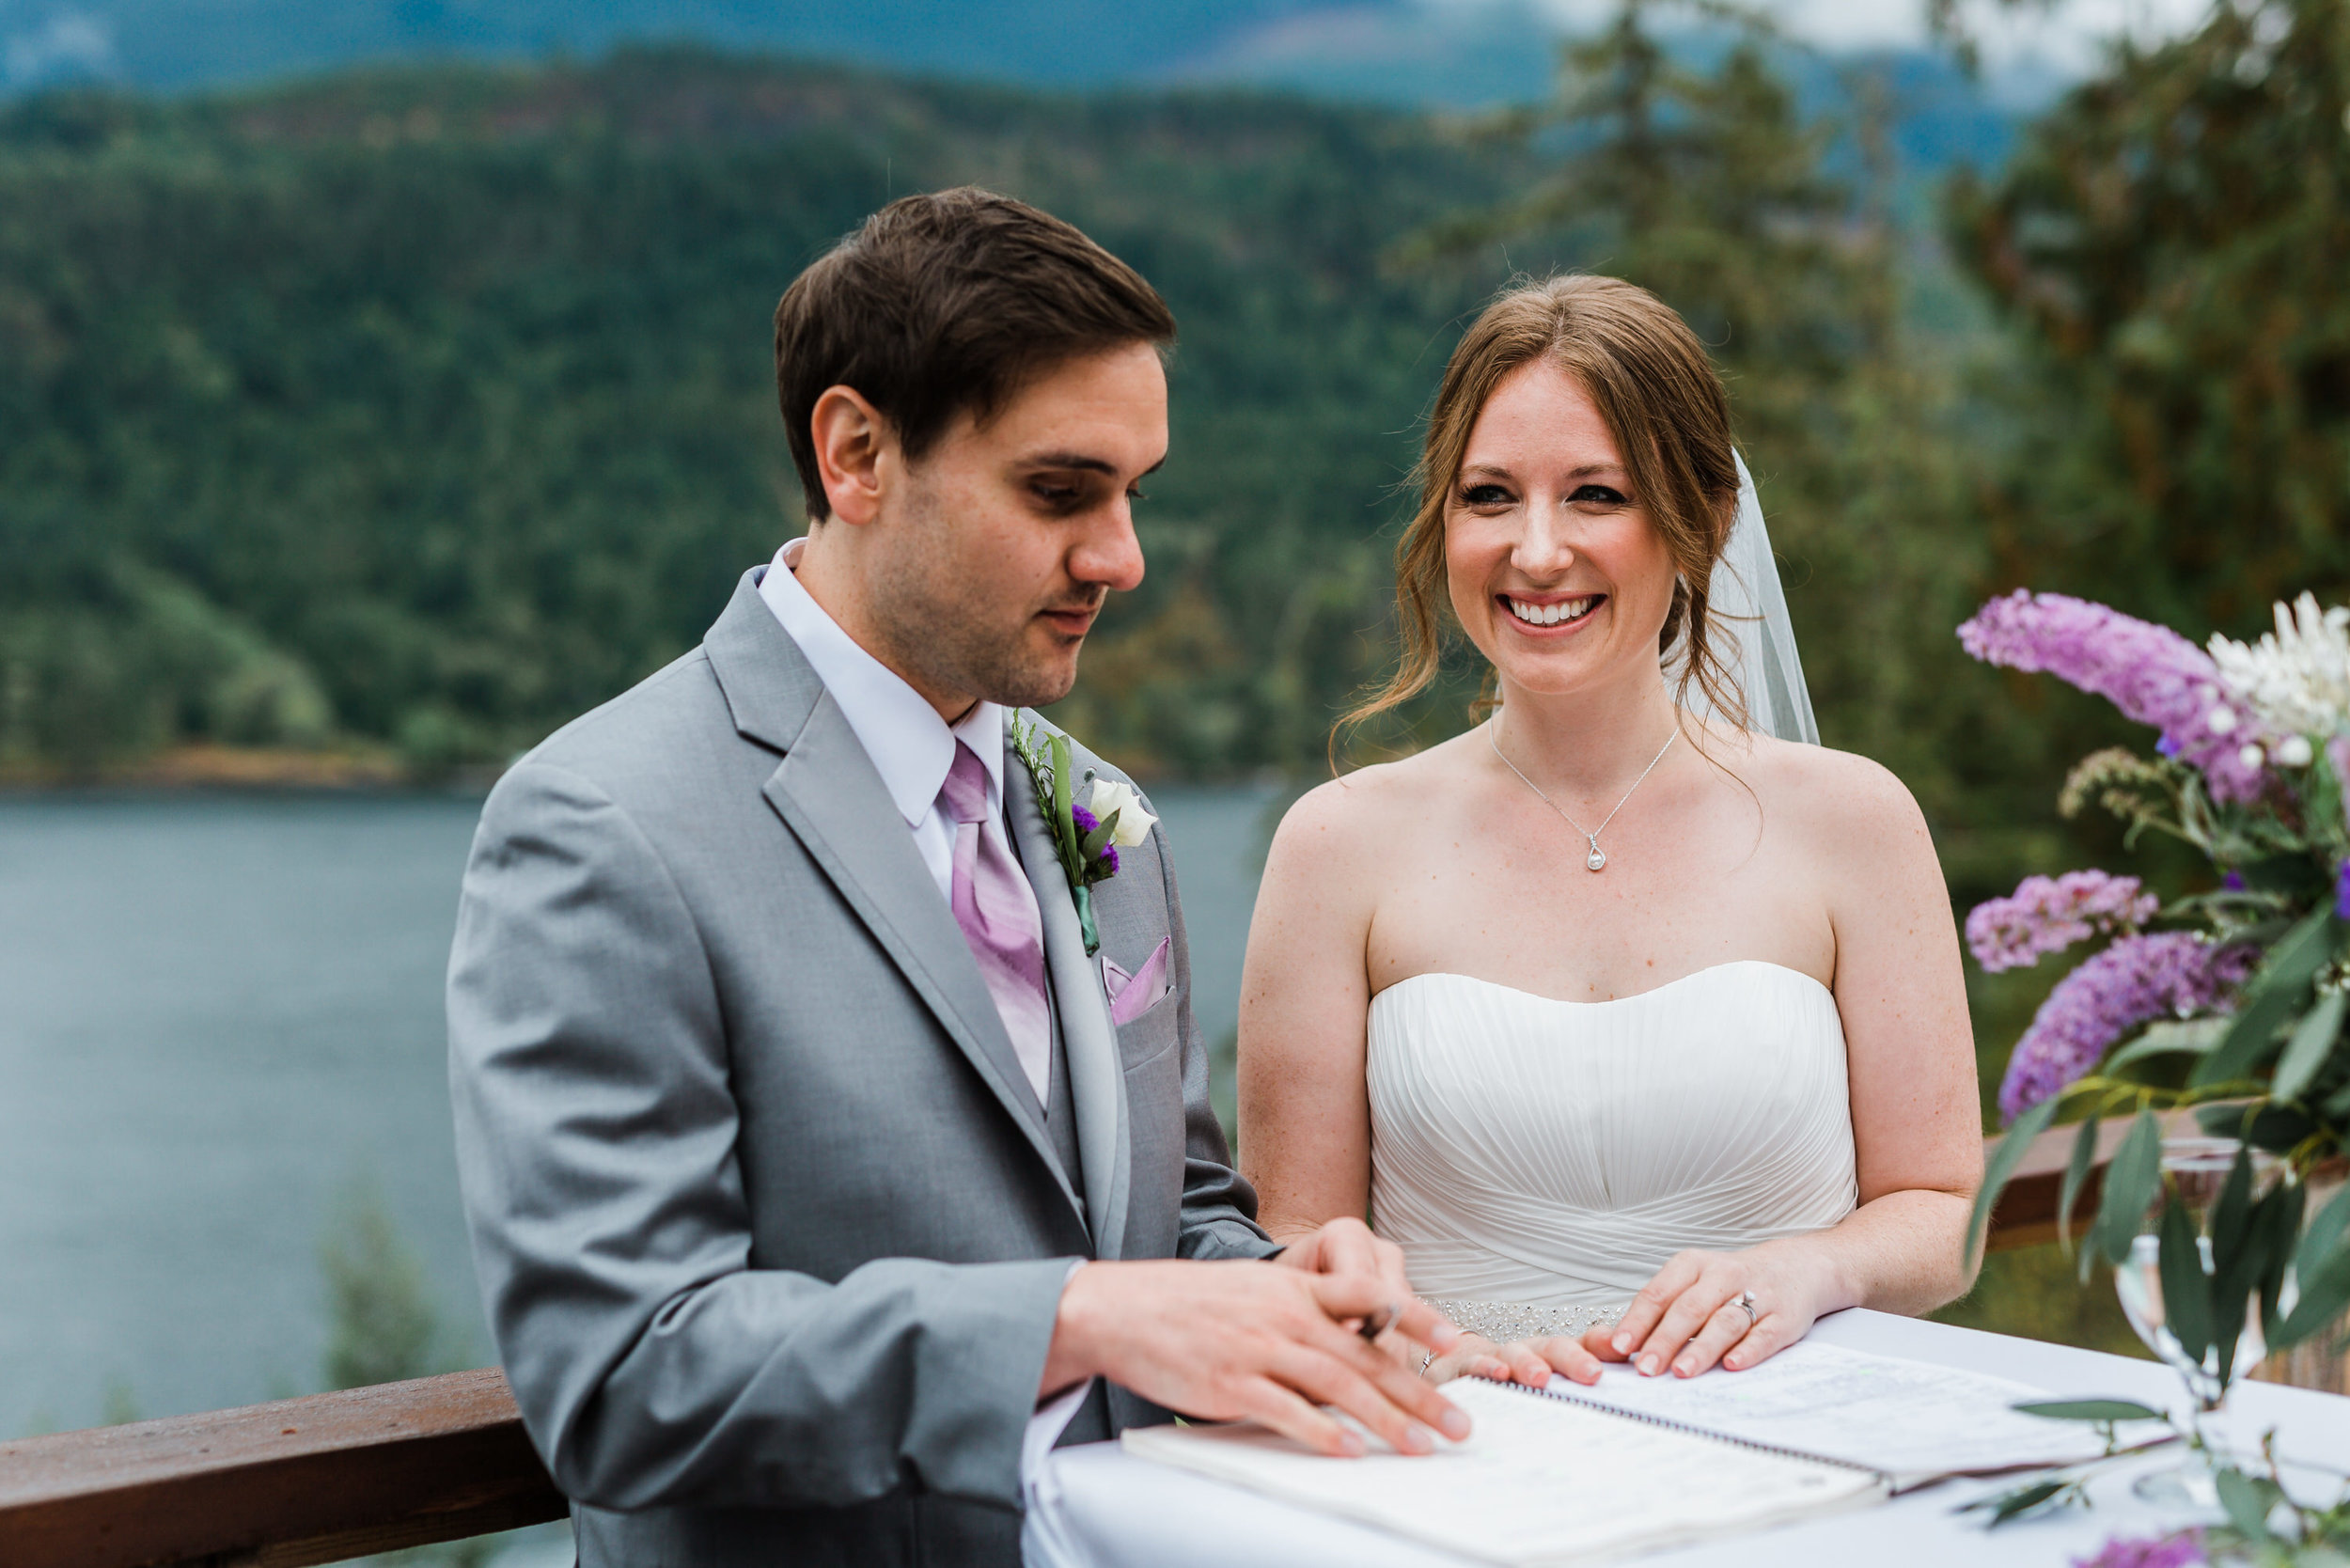 West Coast Wilderness Lodge Wedding Photos - Vancouver Wedding Photographer & Videographer - Sunshine Coast Wedding Photos - Sunshine Coast Wedding Photographer - Jennifer Picard Photography - IMG_4953.jpg